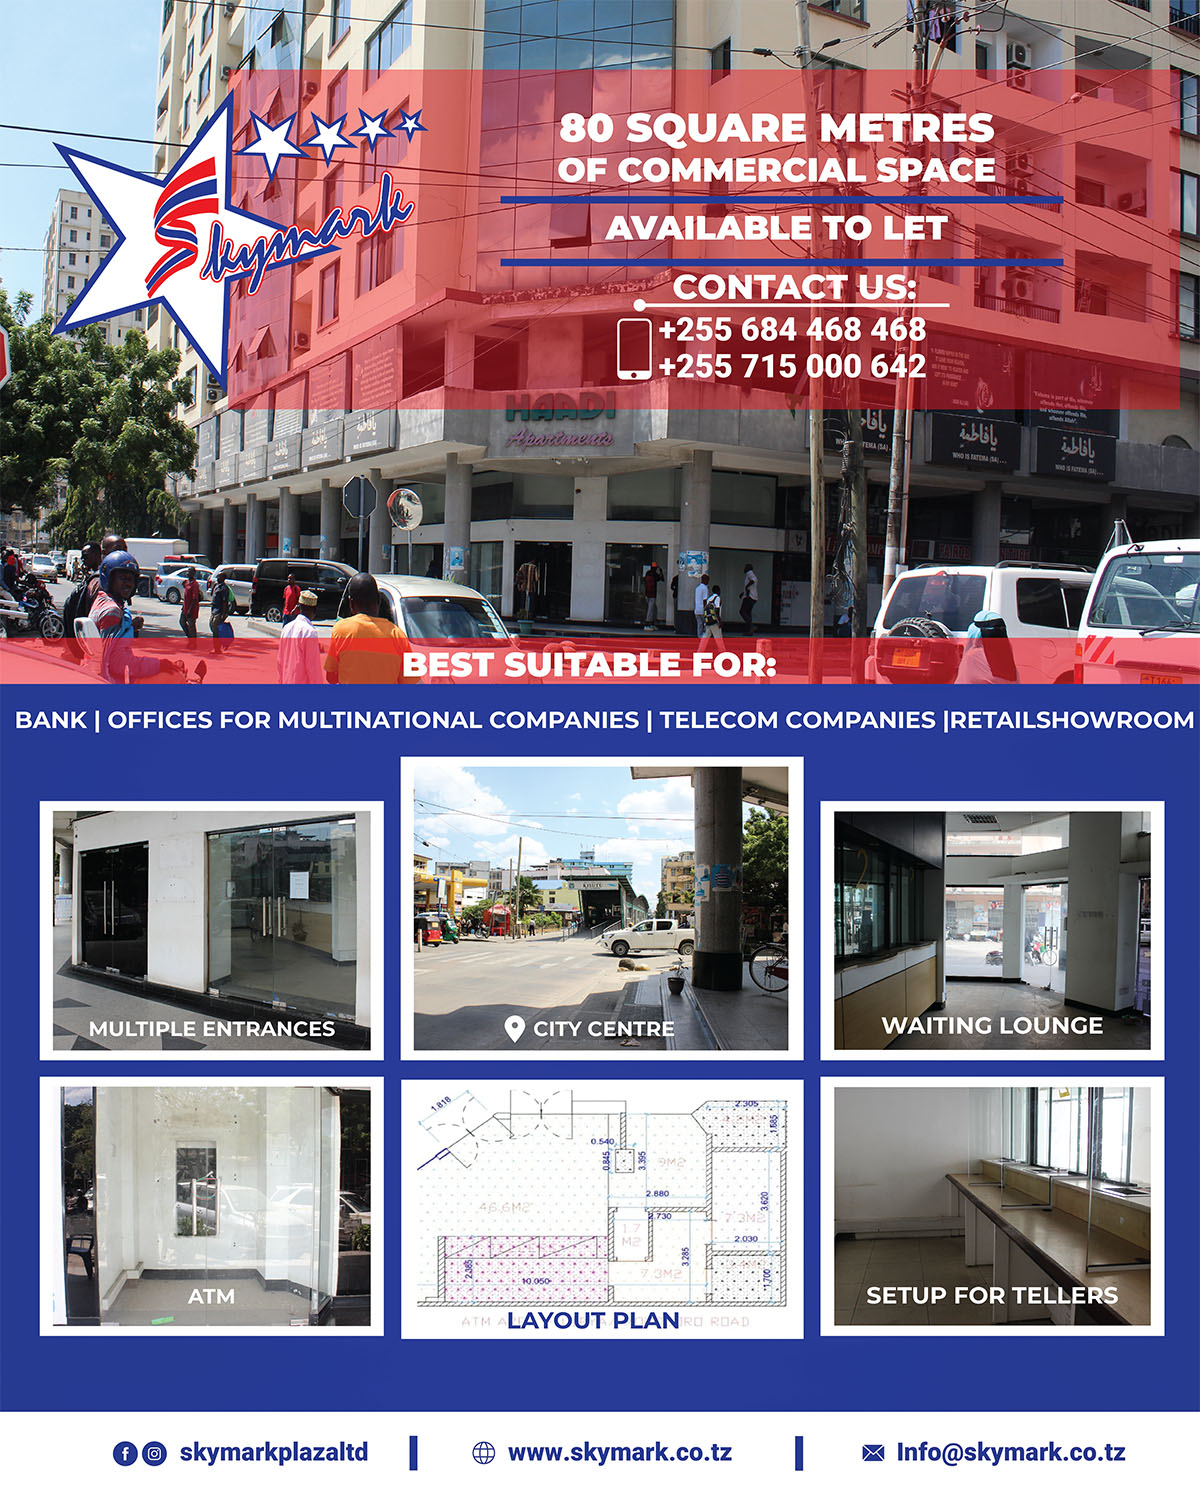 Skymark-80-square-meters-of-commercial-space